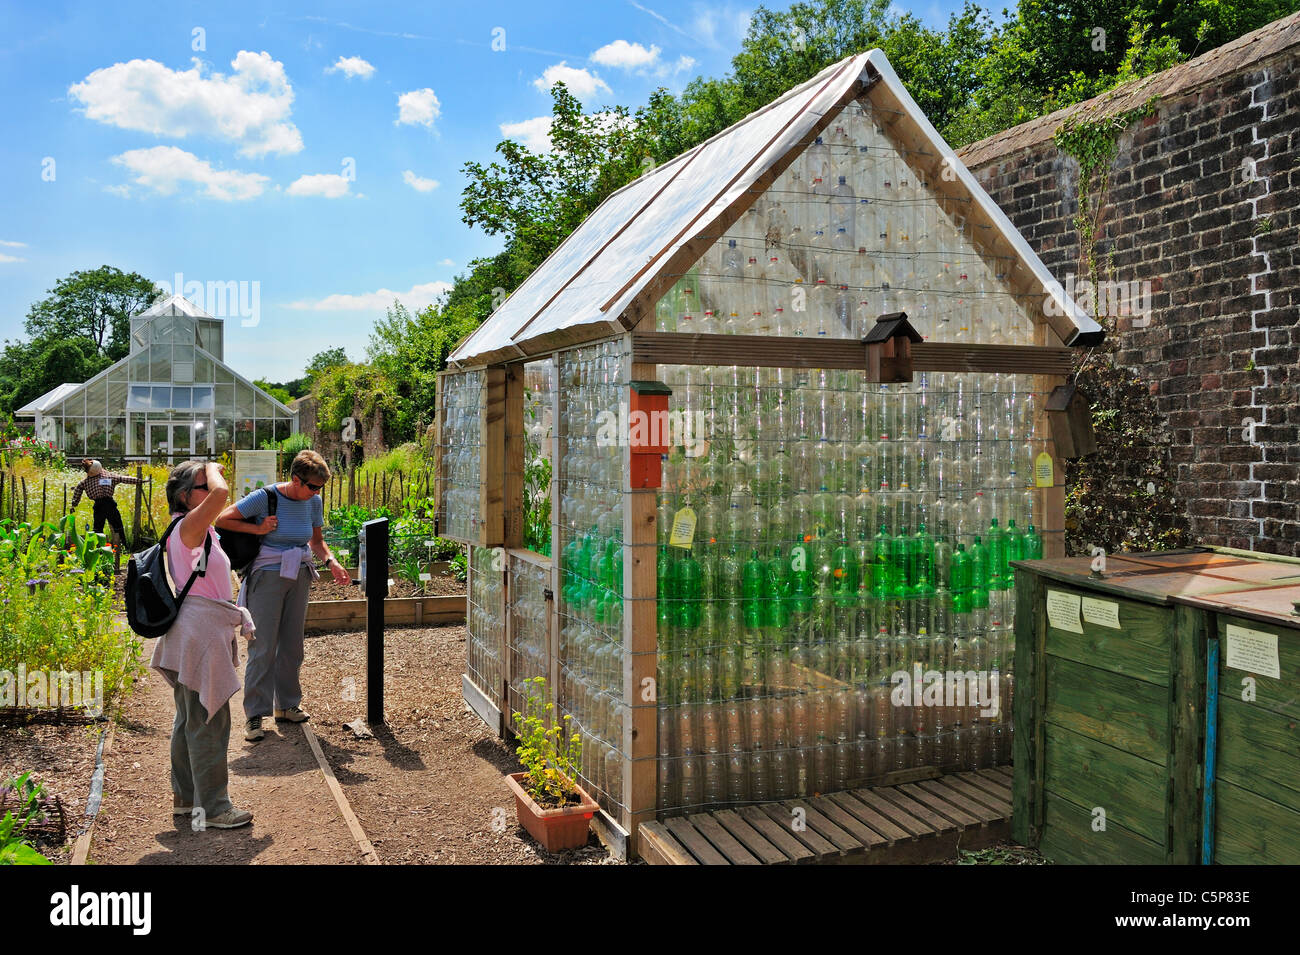 Glasshouse made out of old plastic bottles in the National Botanical Gardens of Wales  - Stock Image